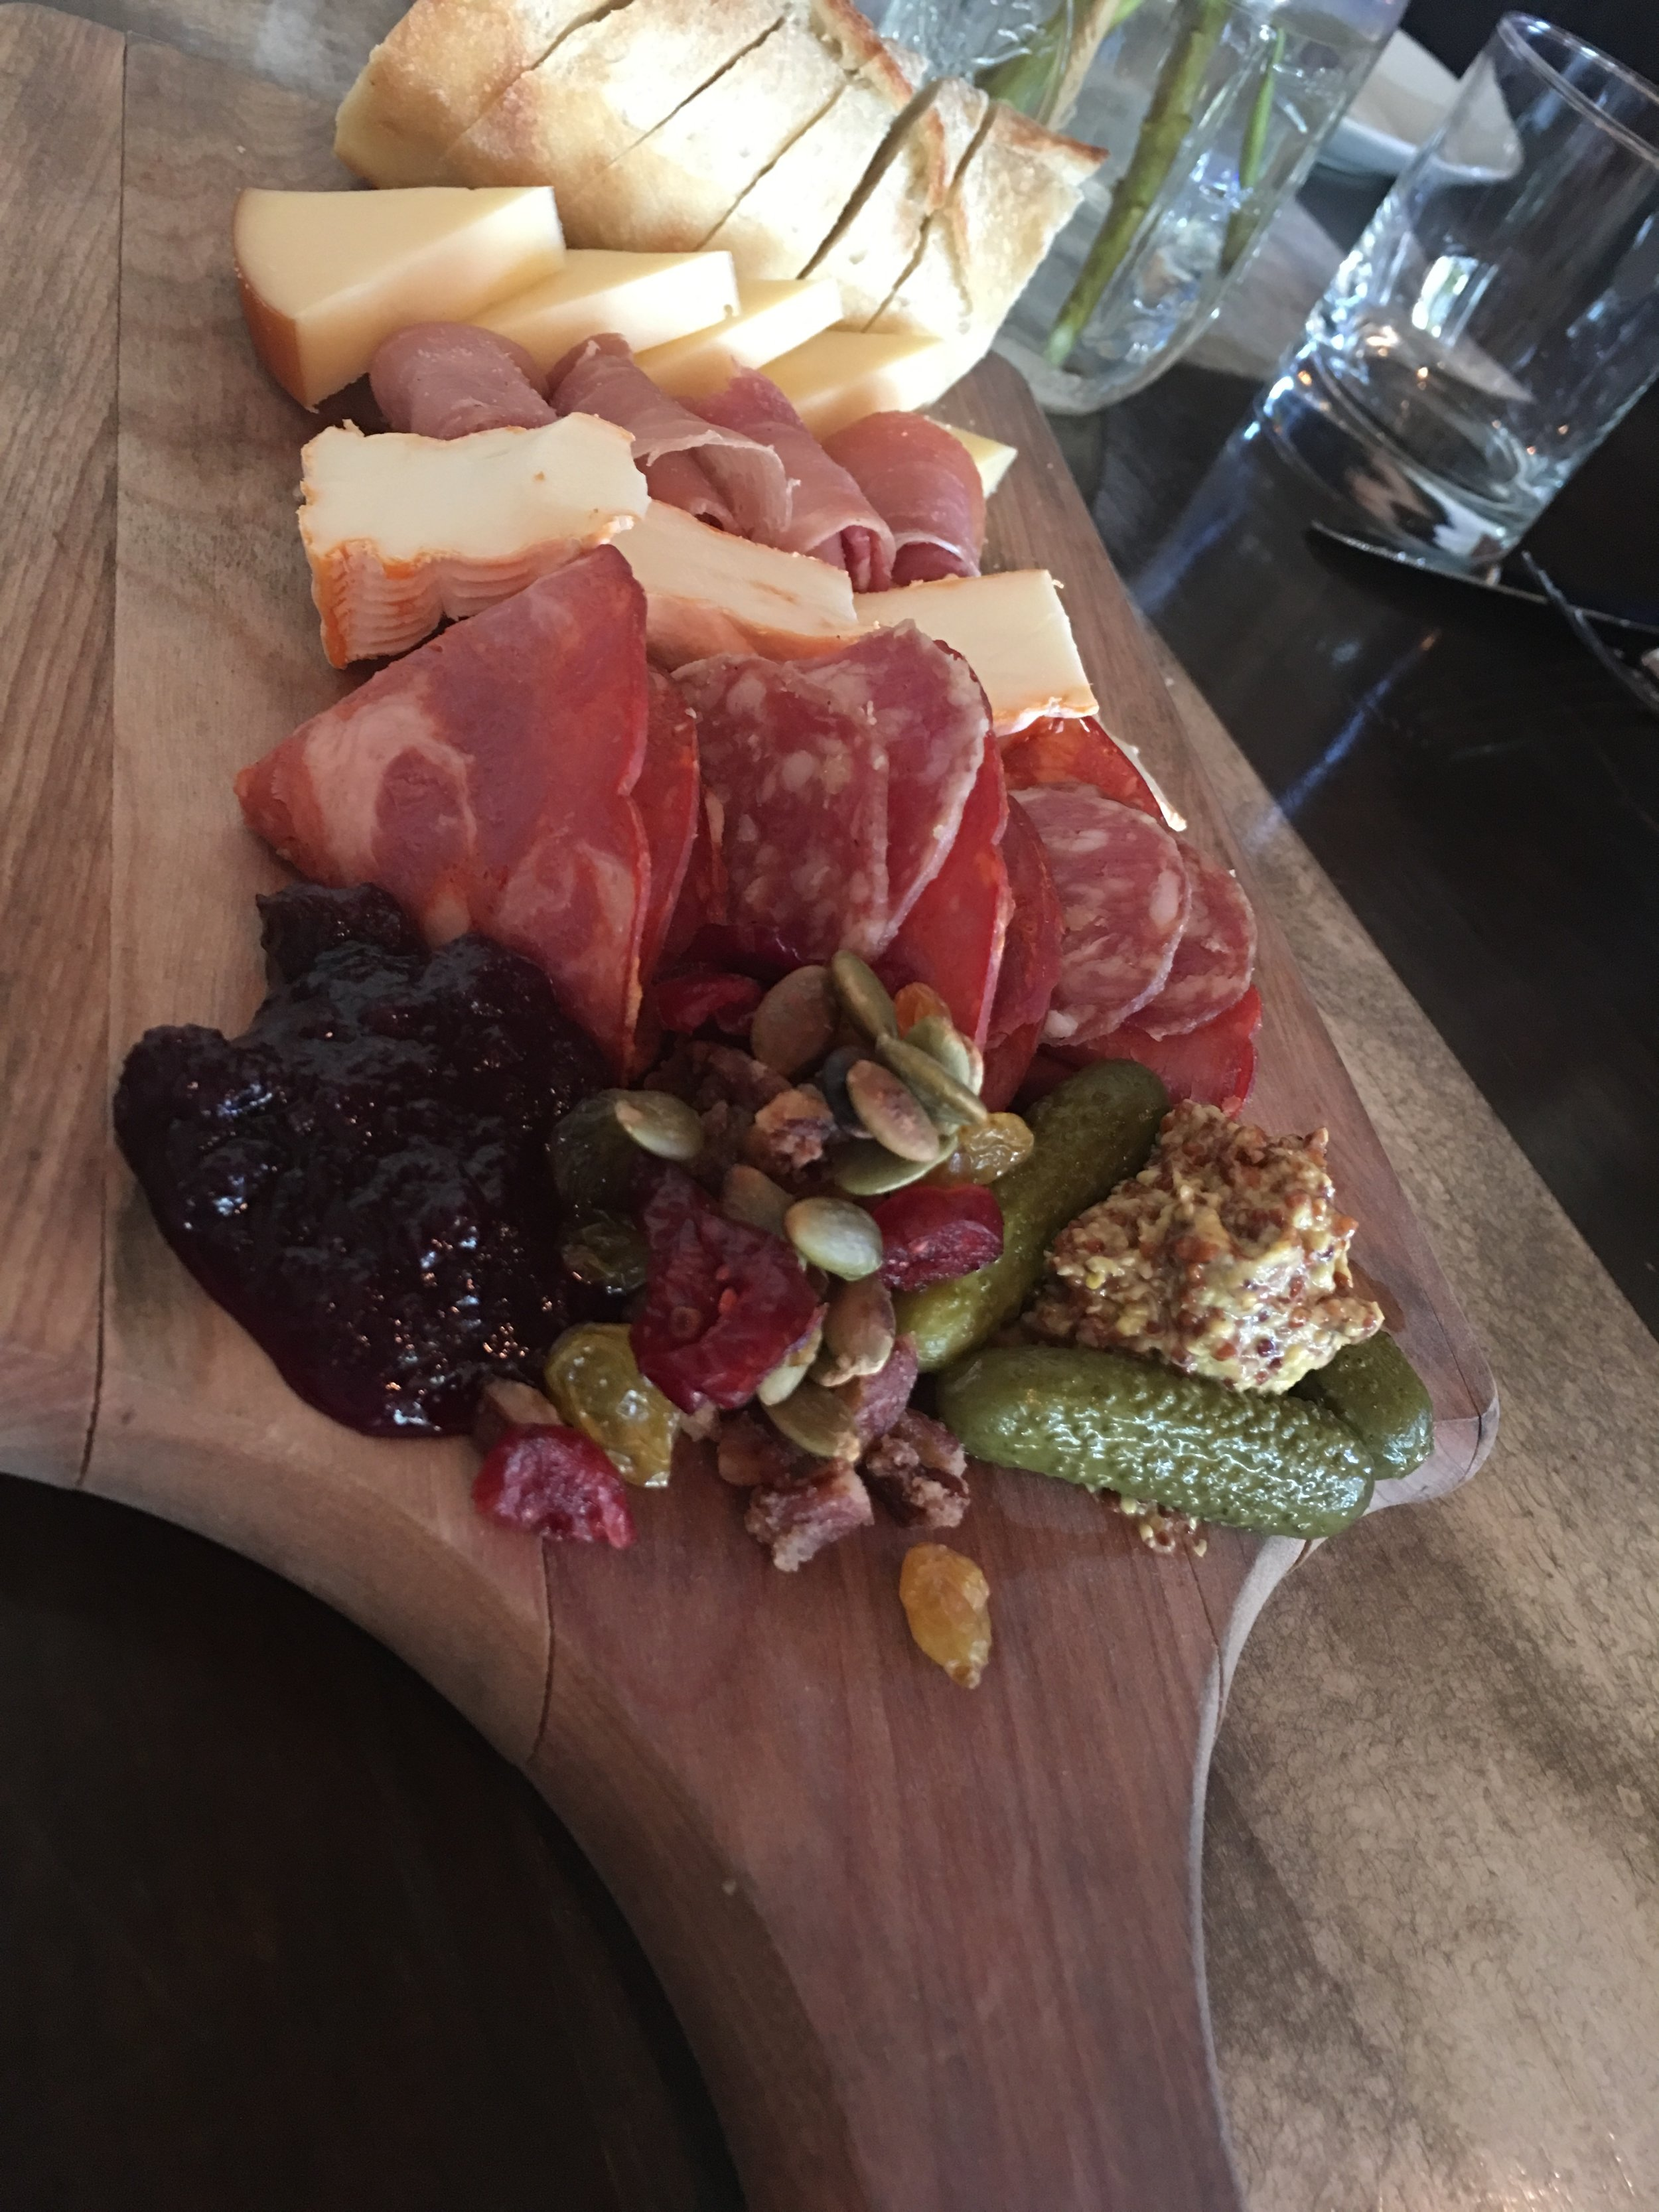 The Charcuterie board at a cozy little restaurant in Denver. We'll call this one the  Mile-High Cheese Plate.